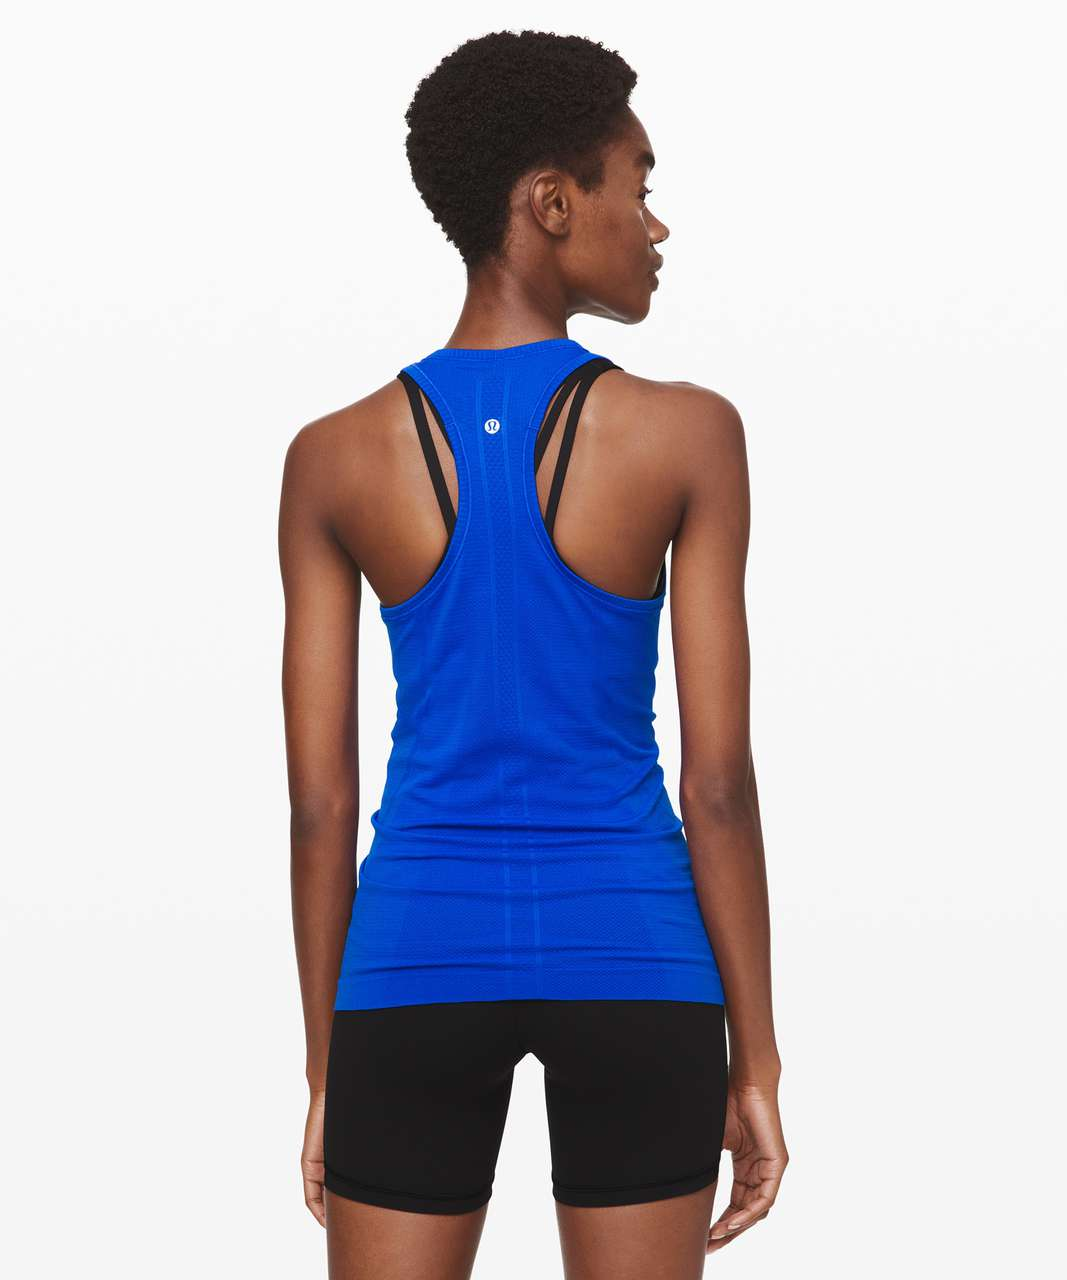 Lululemon Swiftly Tech Racerback - Cerulean Blue / Cerulean Blue